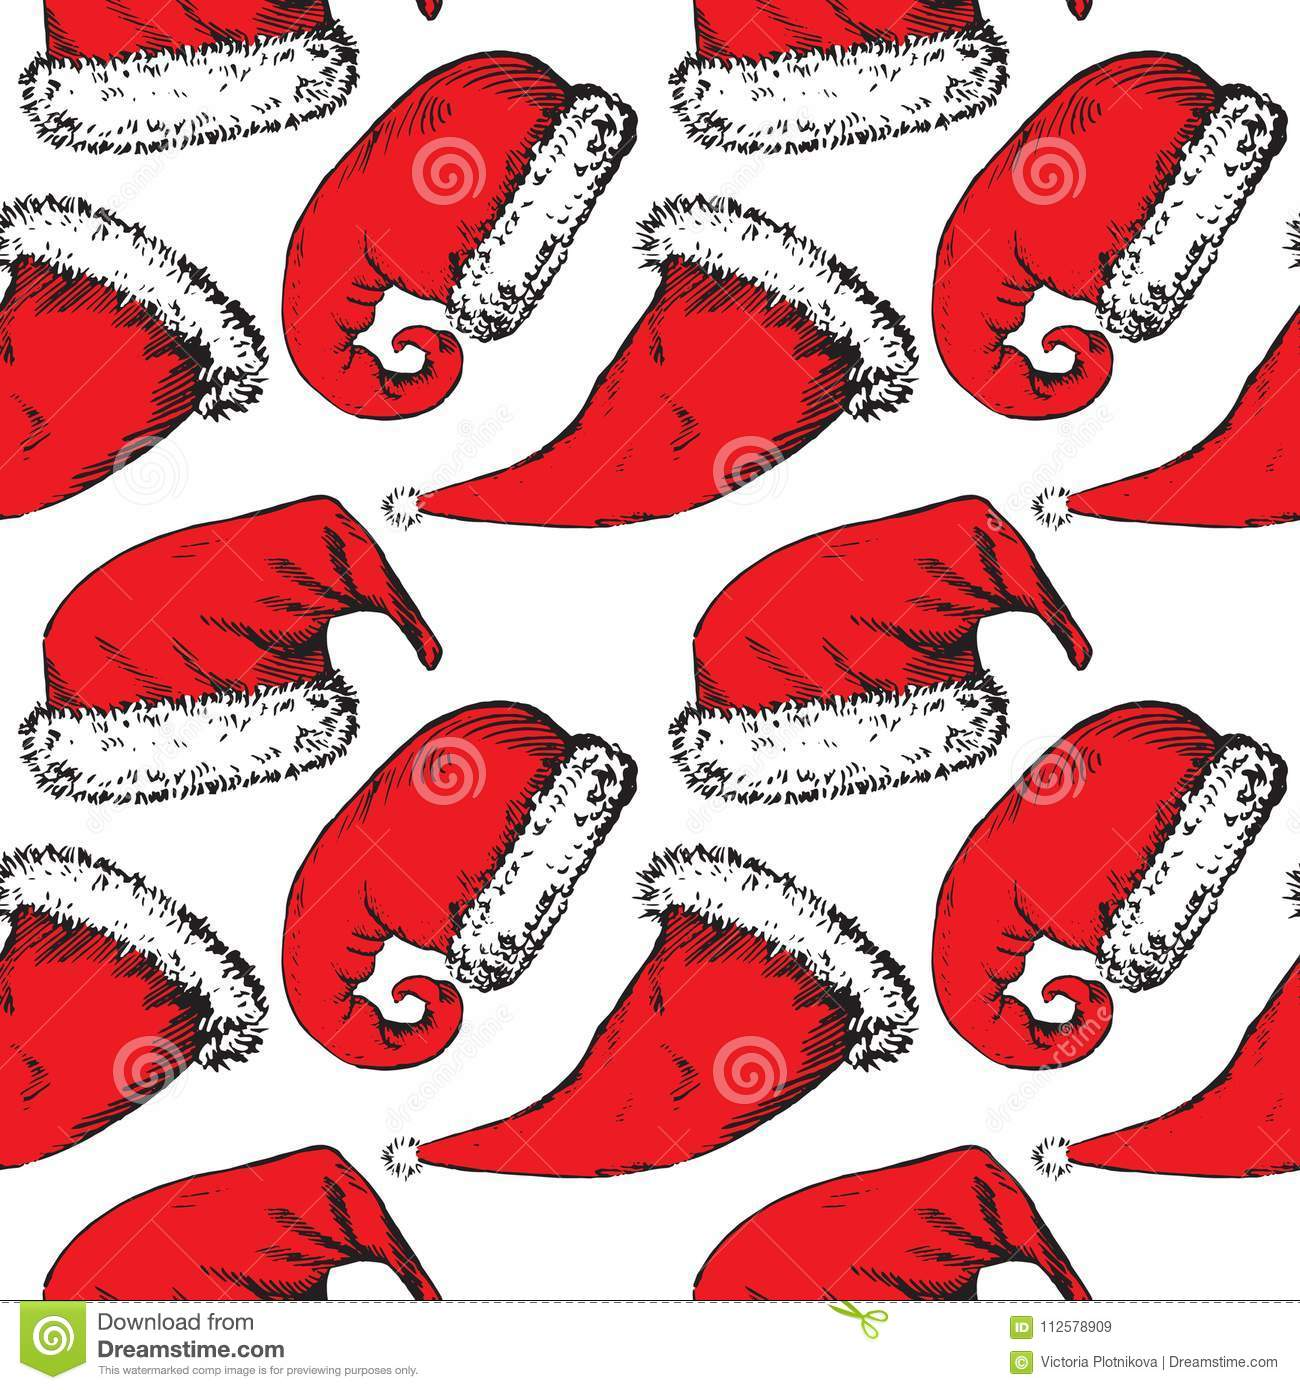 996535427da Red Christmas Santa Hats On White Background Stock Illustration ...